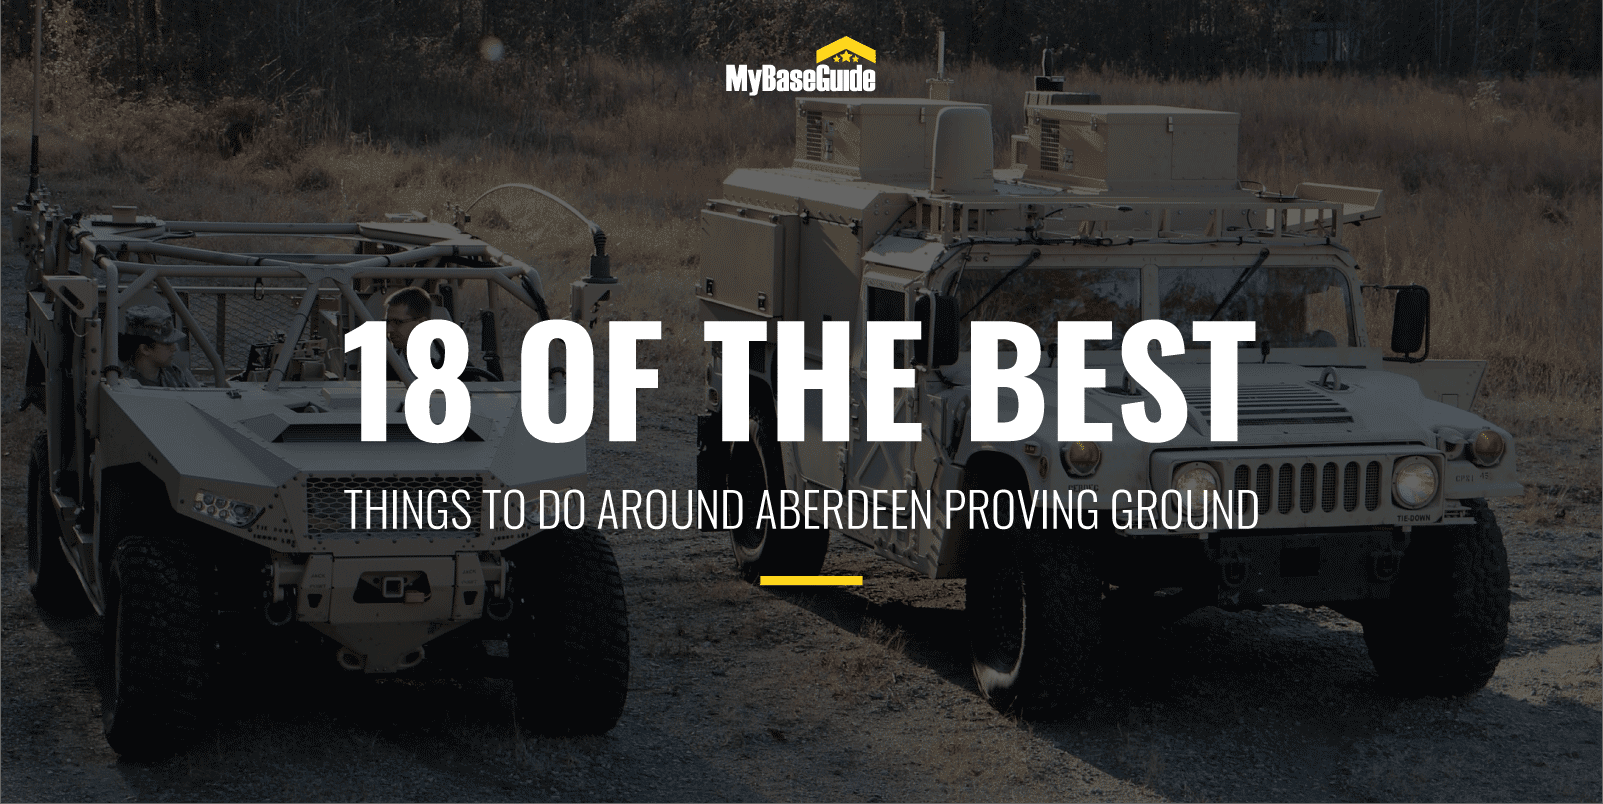 18 Of the Best Things to Do Around Aberdeen Proving Ground